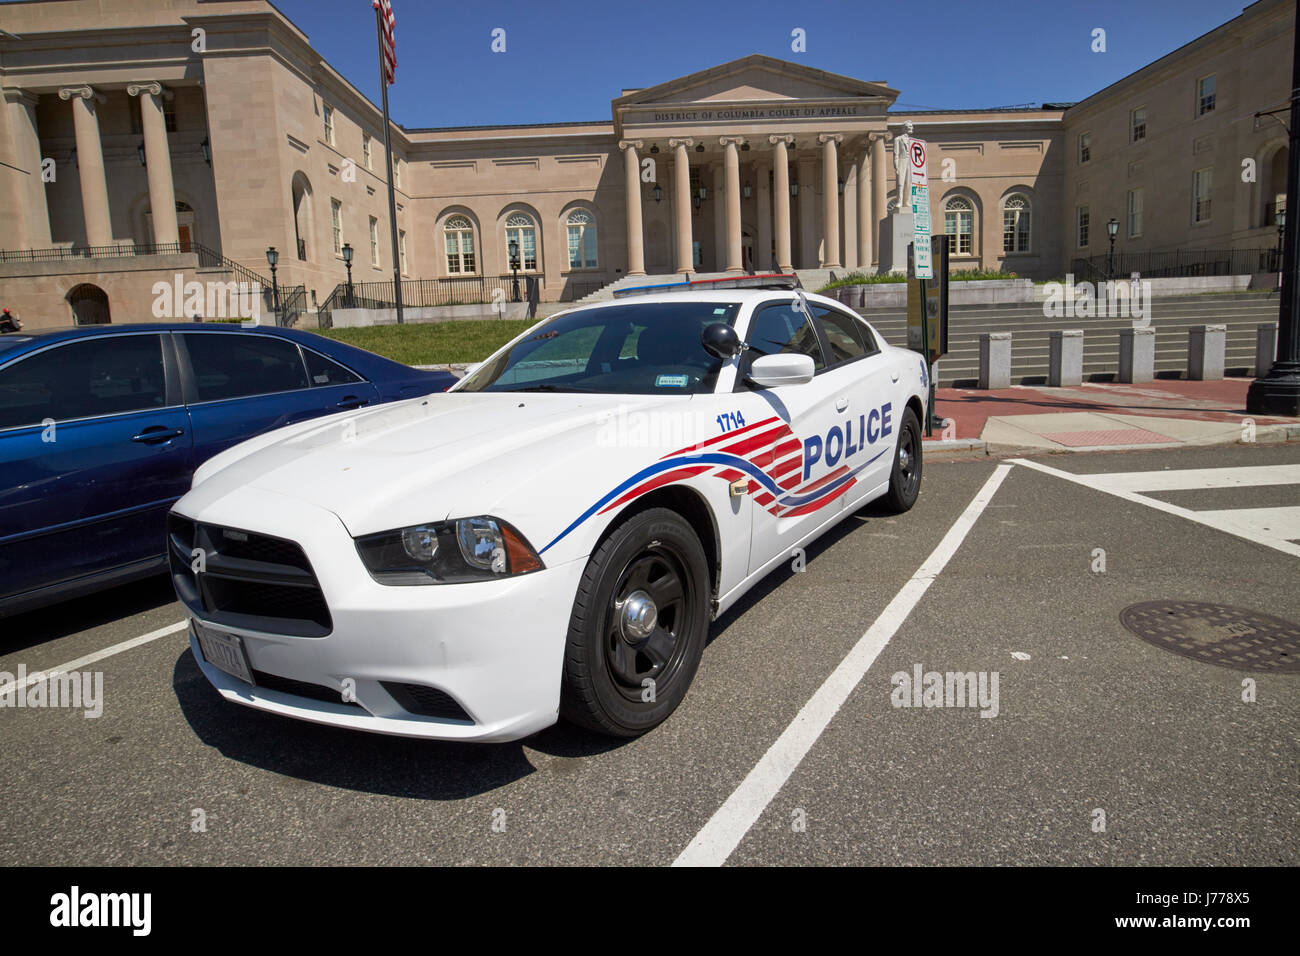 dc police car in front of District of Columbia City Hall now the court of appeals judiciary square Washington DC - Stock Image